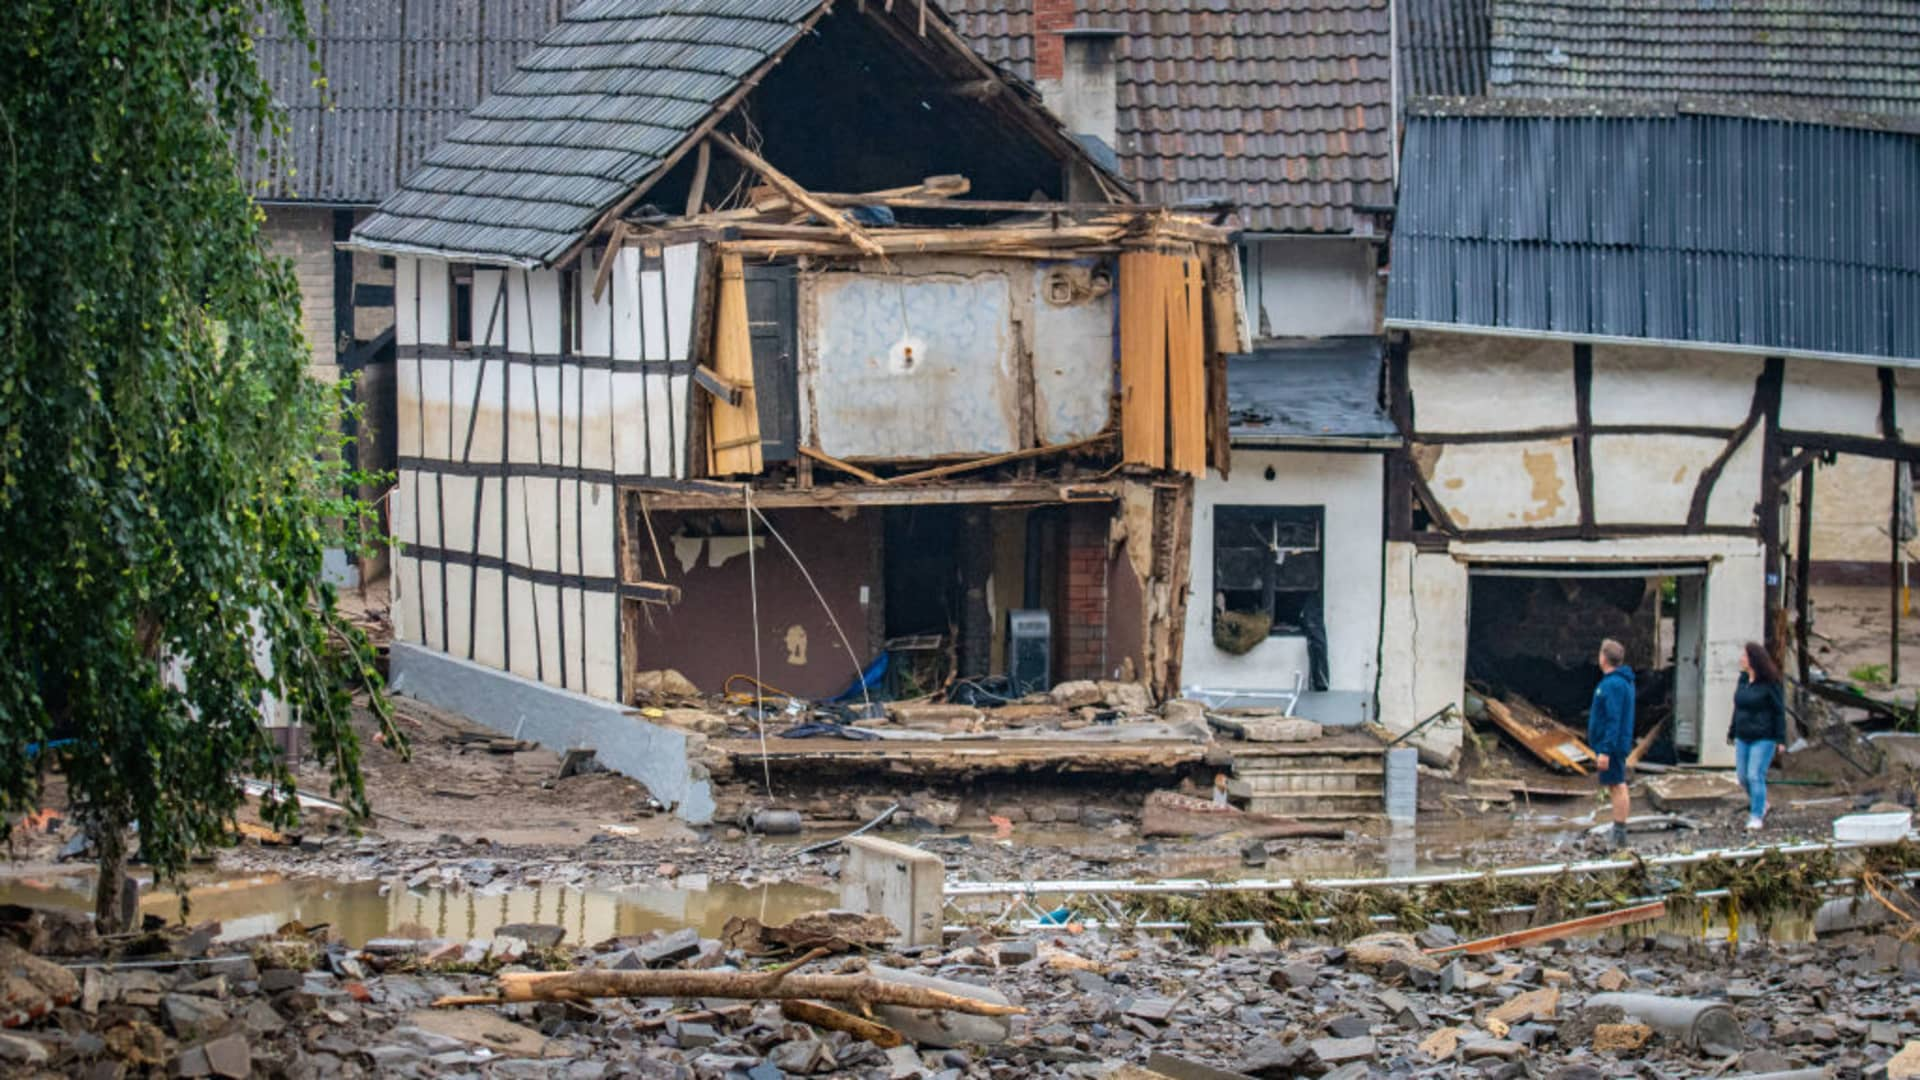 SCHULD, GERMANY - JULY 16: Destroyed houses and cars pictured on July 16, 2021 in Schuld, Germany.